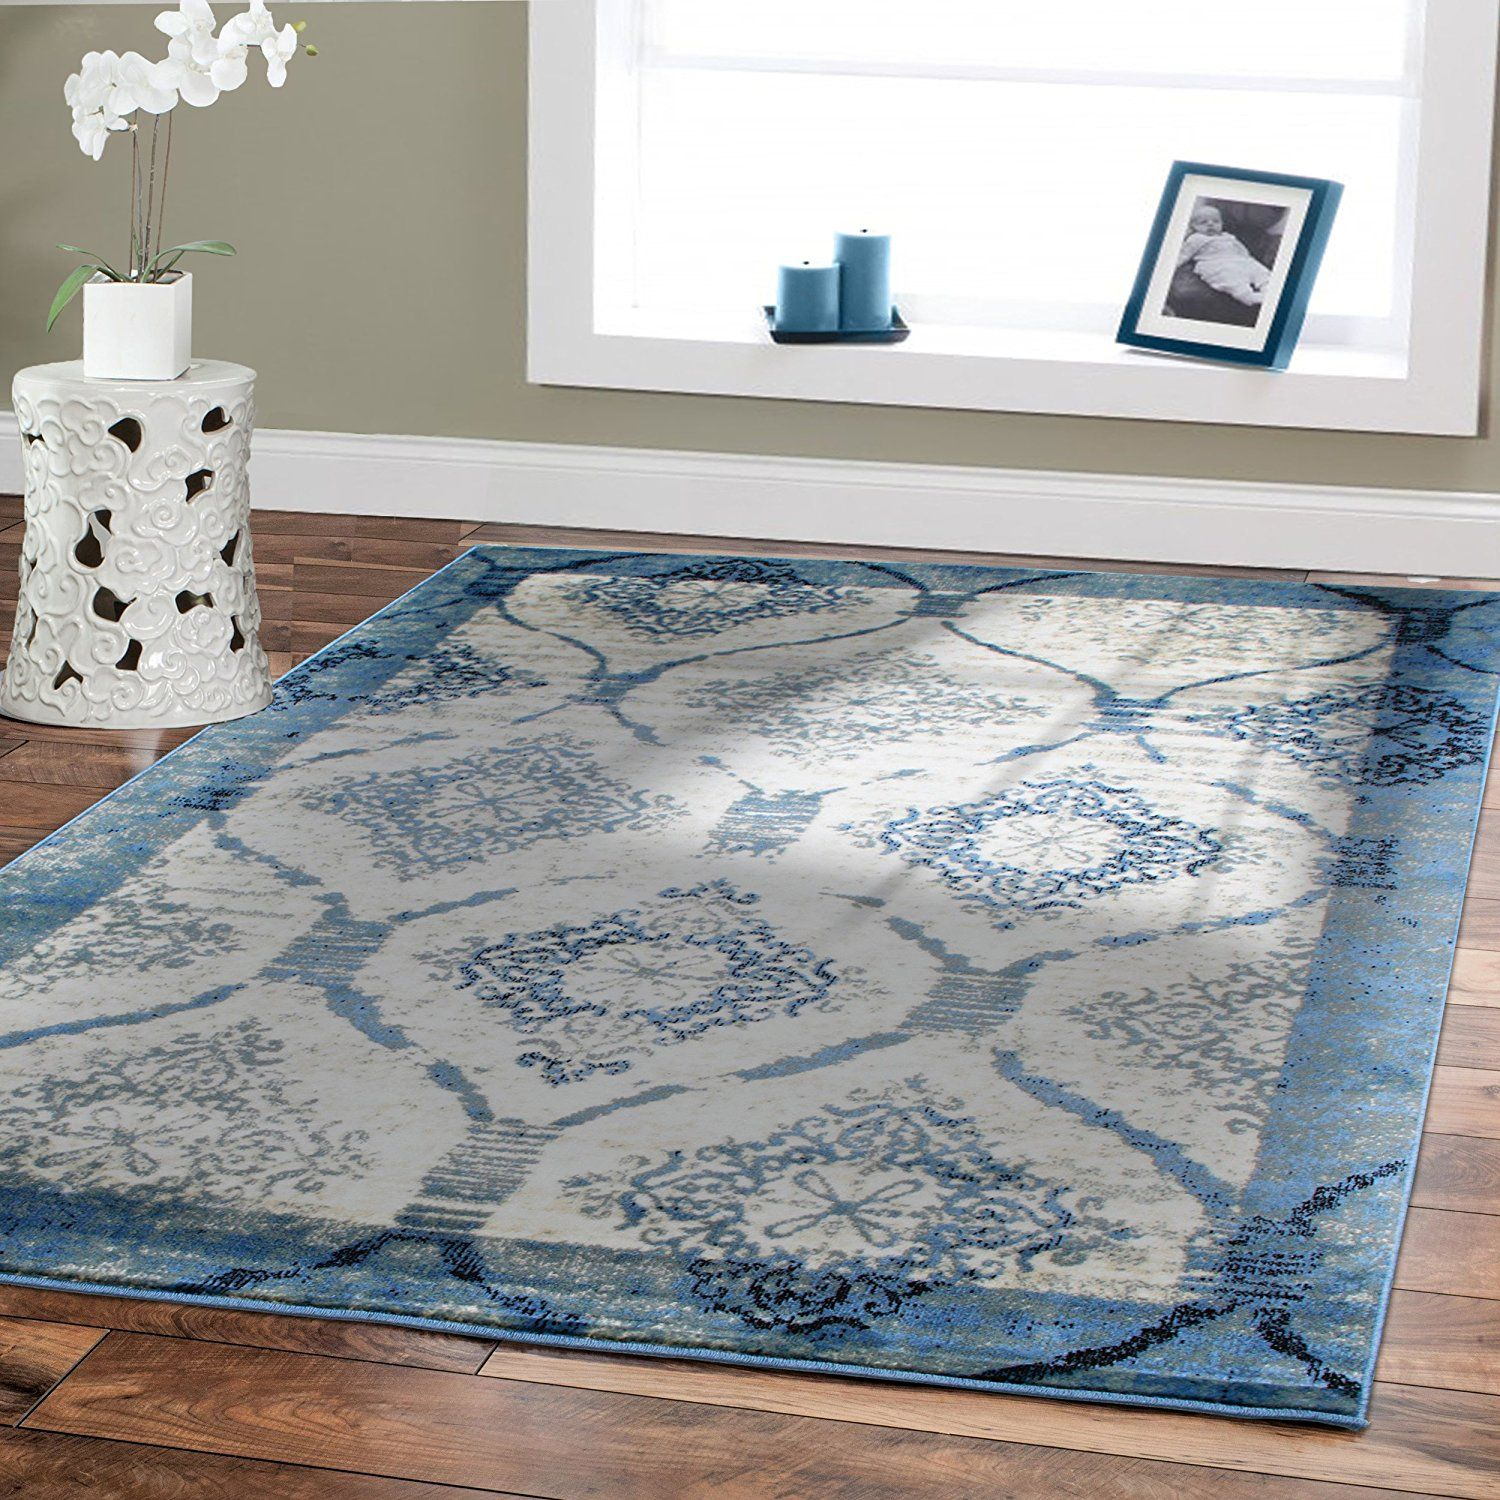 Premium Soft Area Rugs For Living Room 5x7 Under150 Blue Dining Room Rugs For Under The Table 5x8 Contemporary Area Rug Dining Room Blue Rugs In Living Room Gray Rug Living